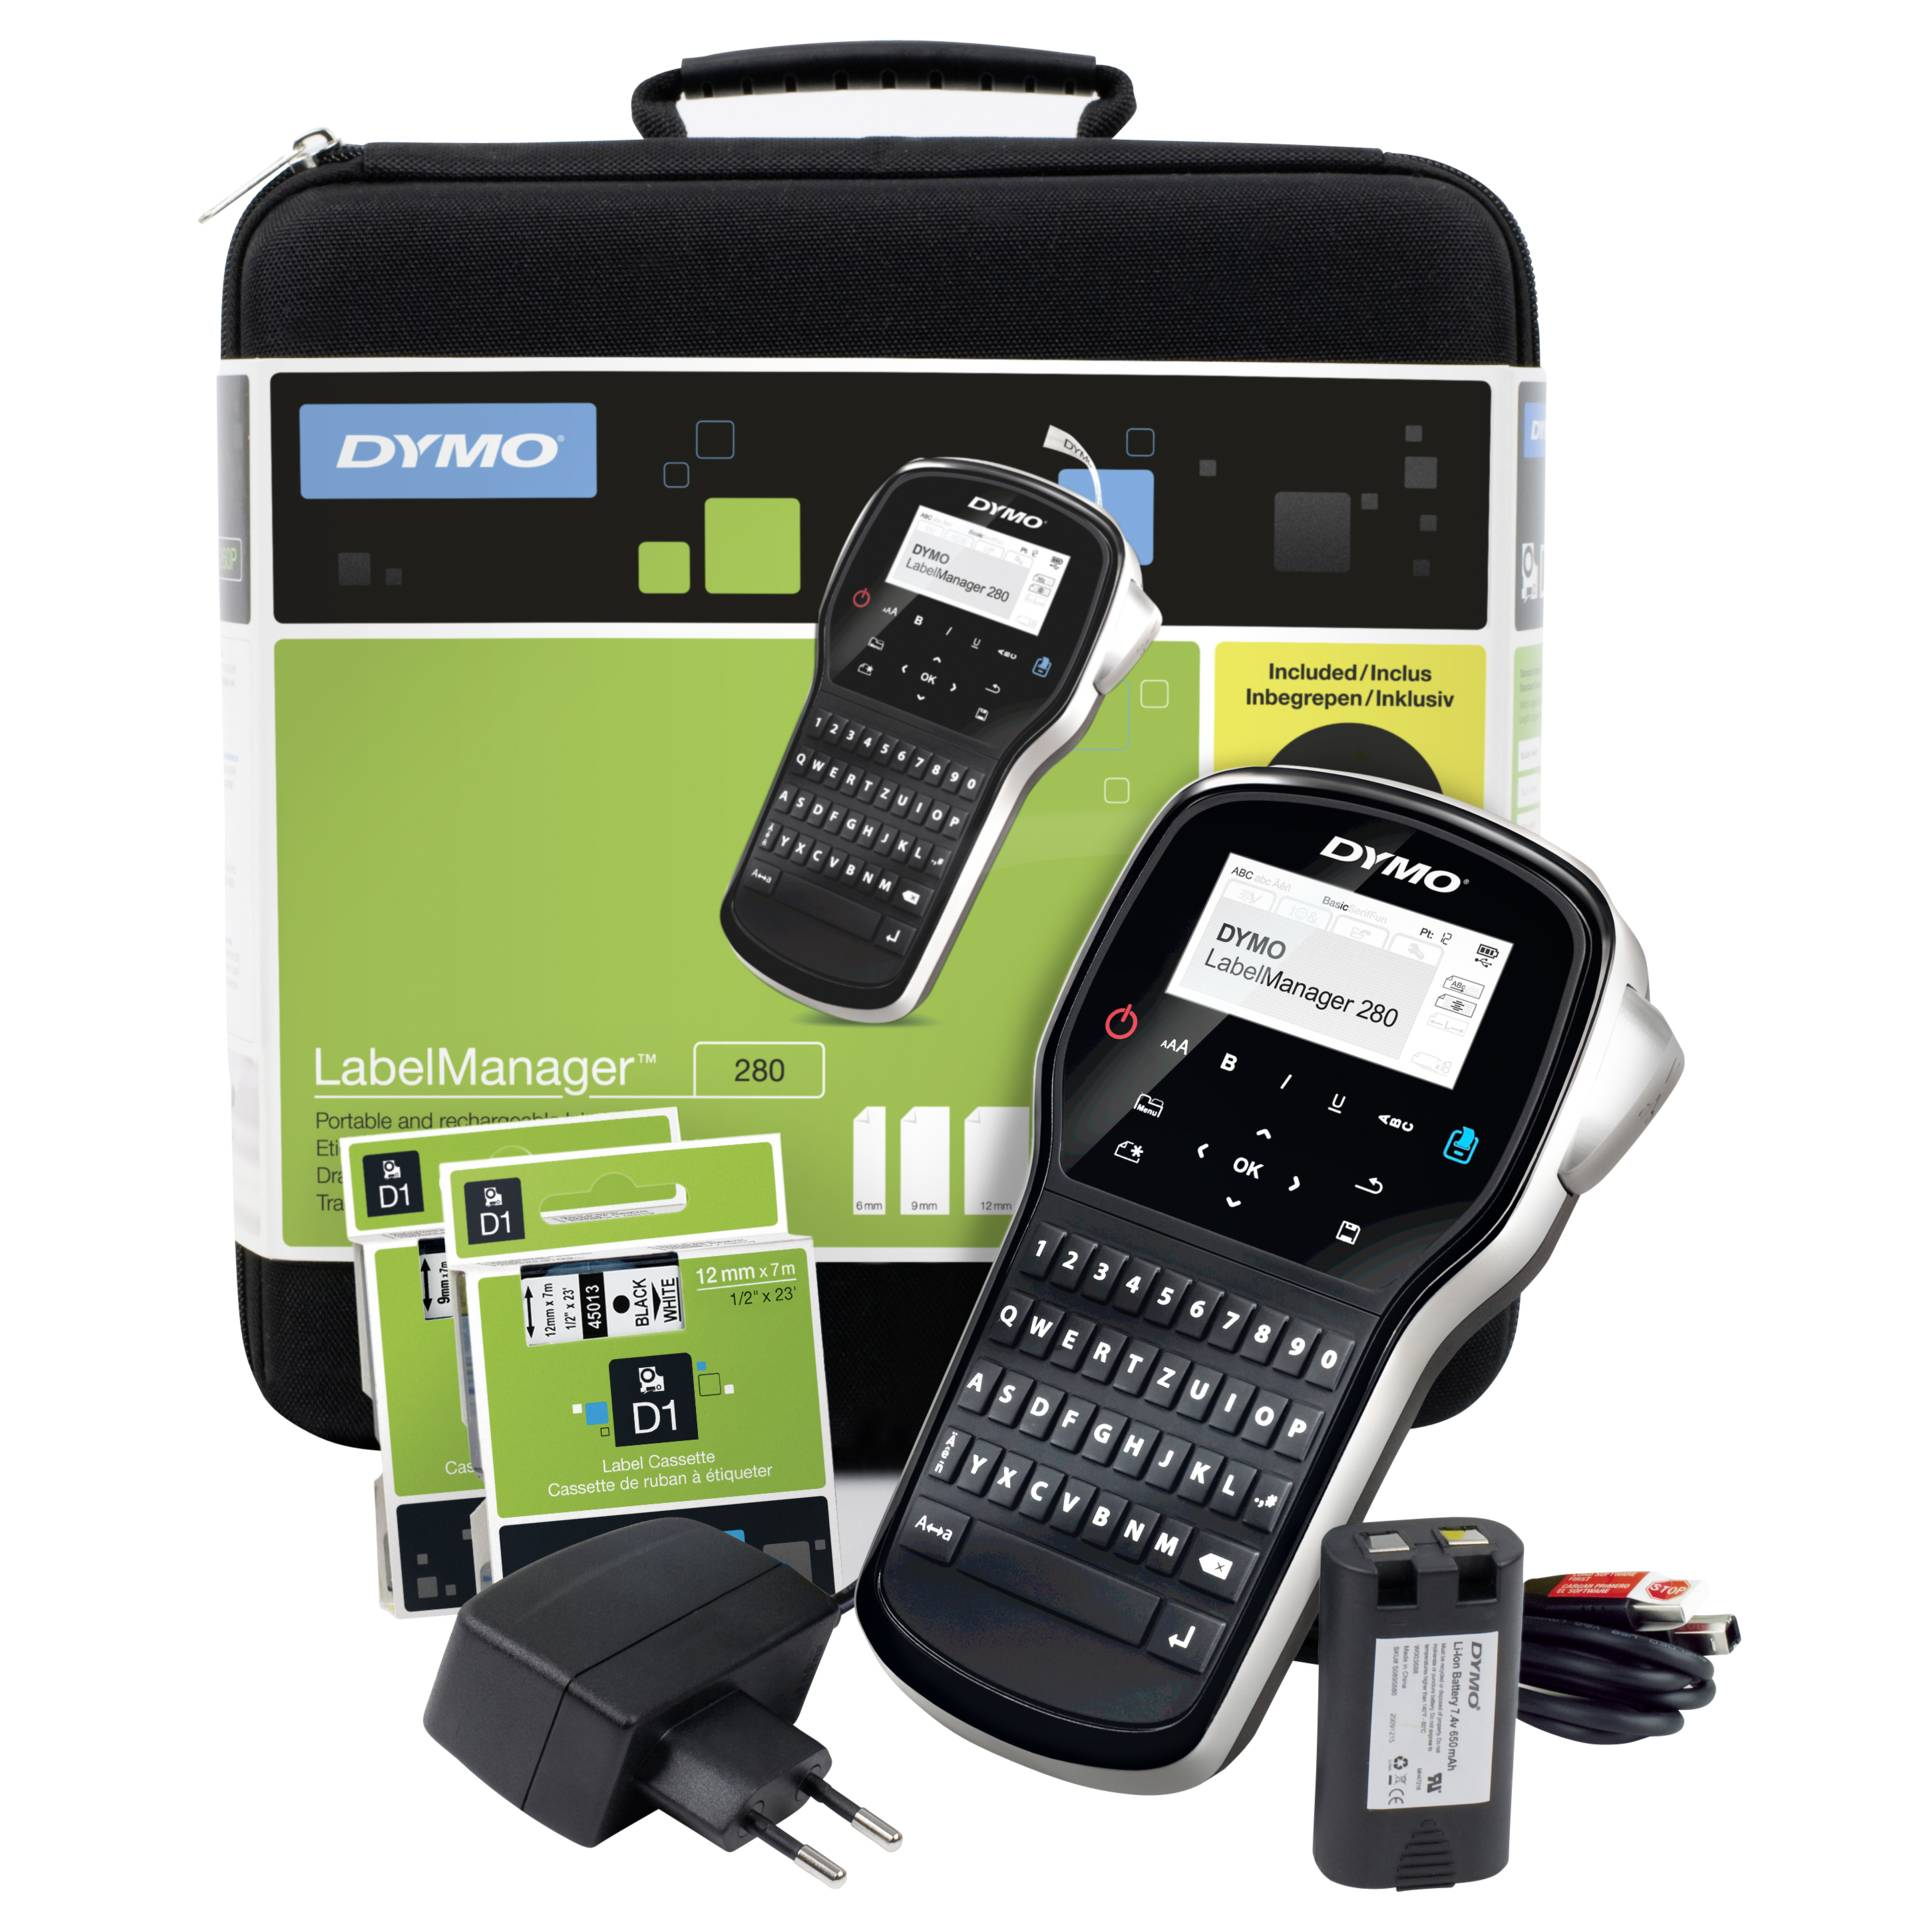 Dymo LabelManager 280 im Koffer